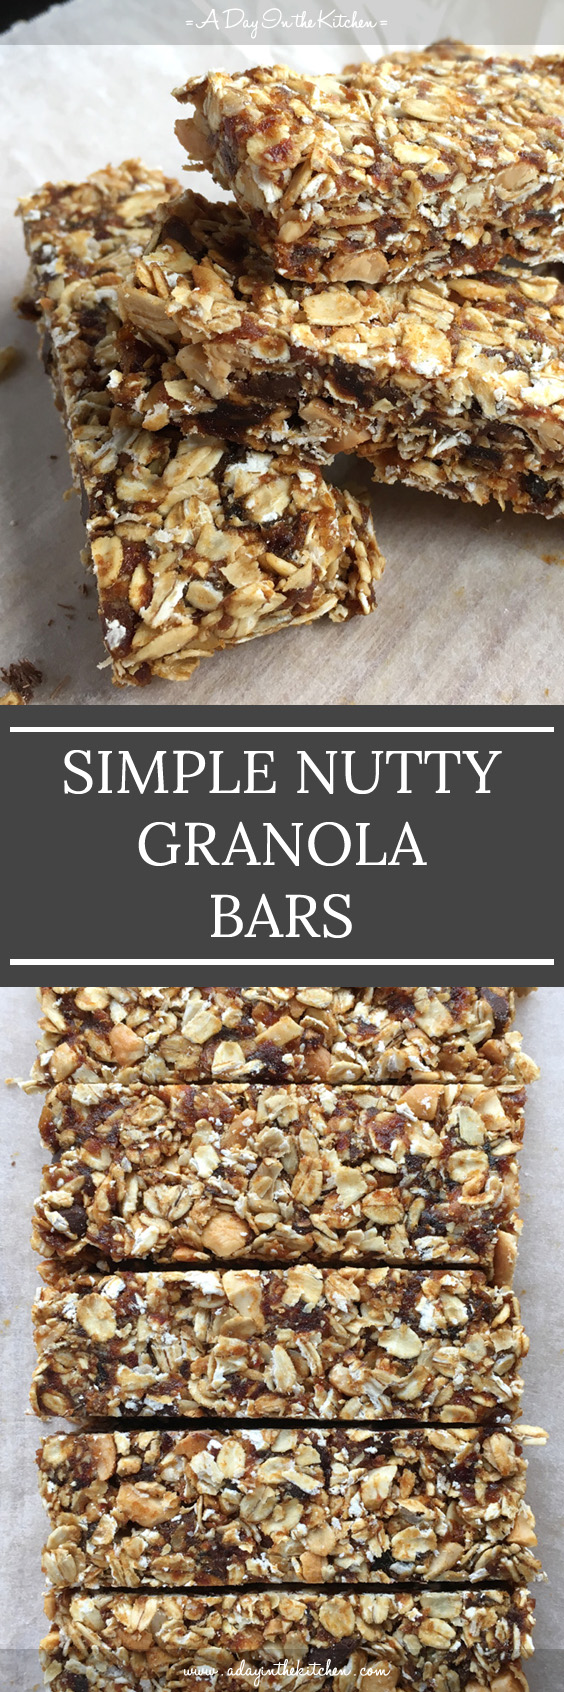 Simple Nutty Granola Bars have no refined sugar and don't require baking for them to set. Easy to make and tasty to eat, they make the perfect snack! #simplenuttygranolabars #granolabars #nobakegranolabars #granola #chocolatechips